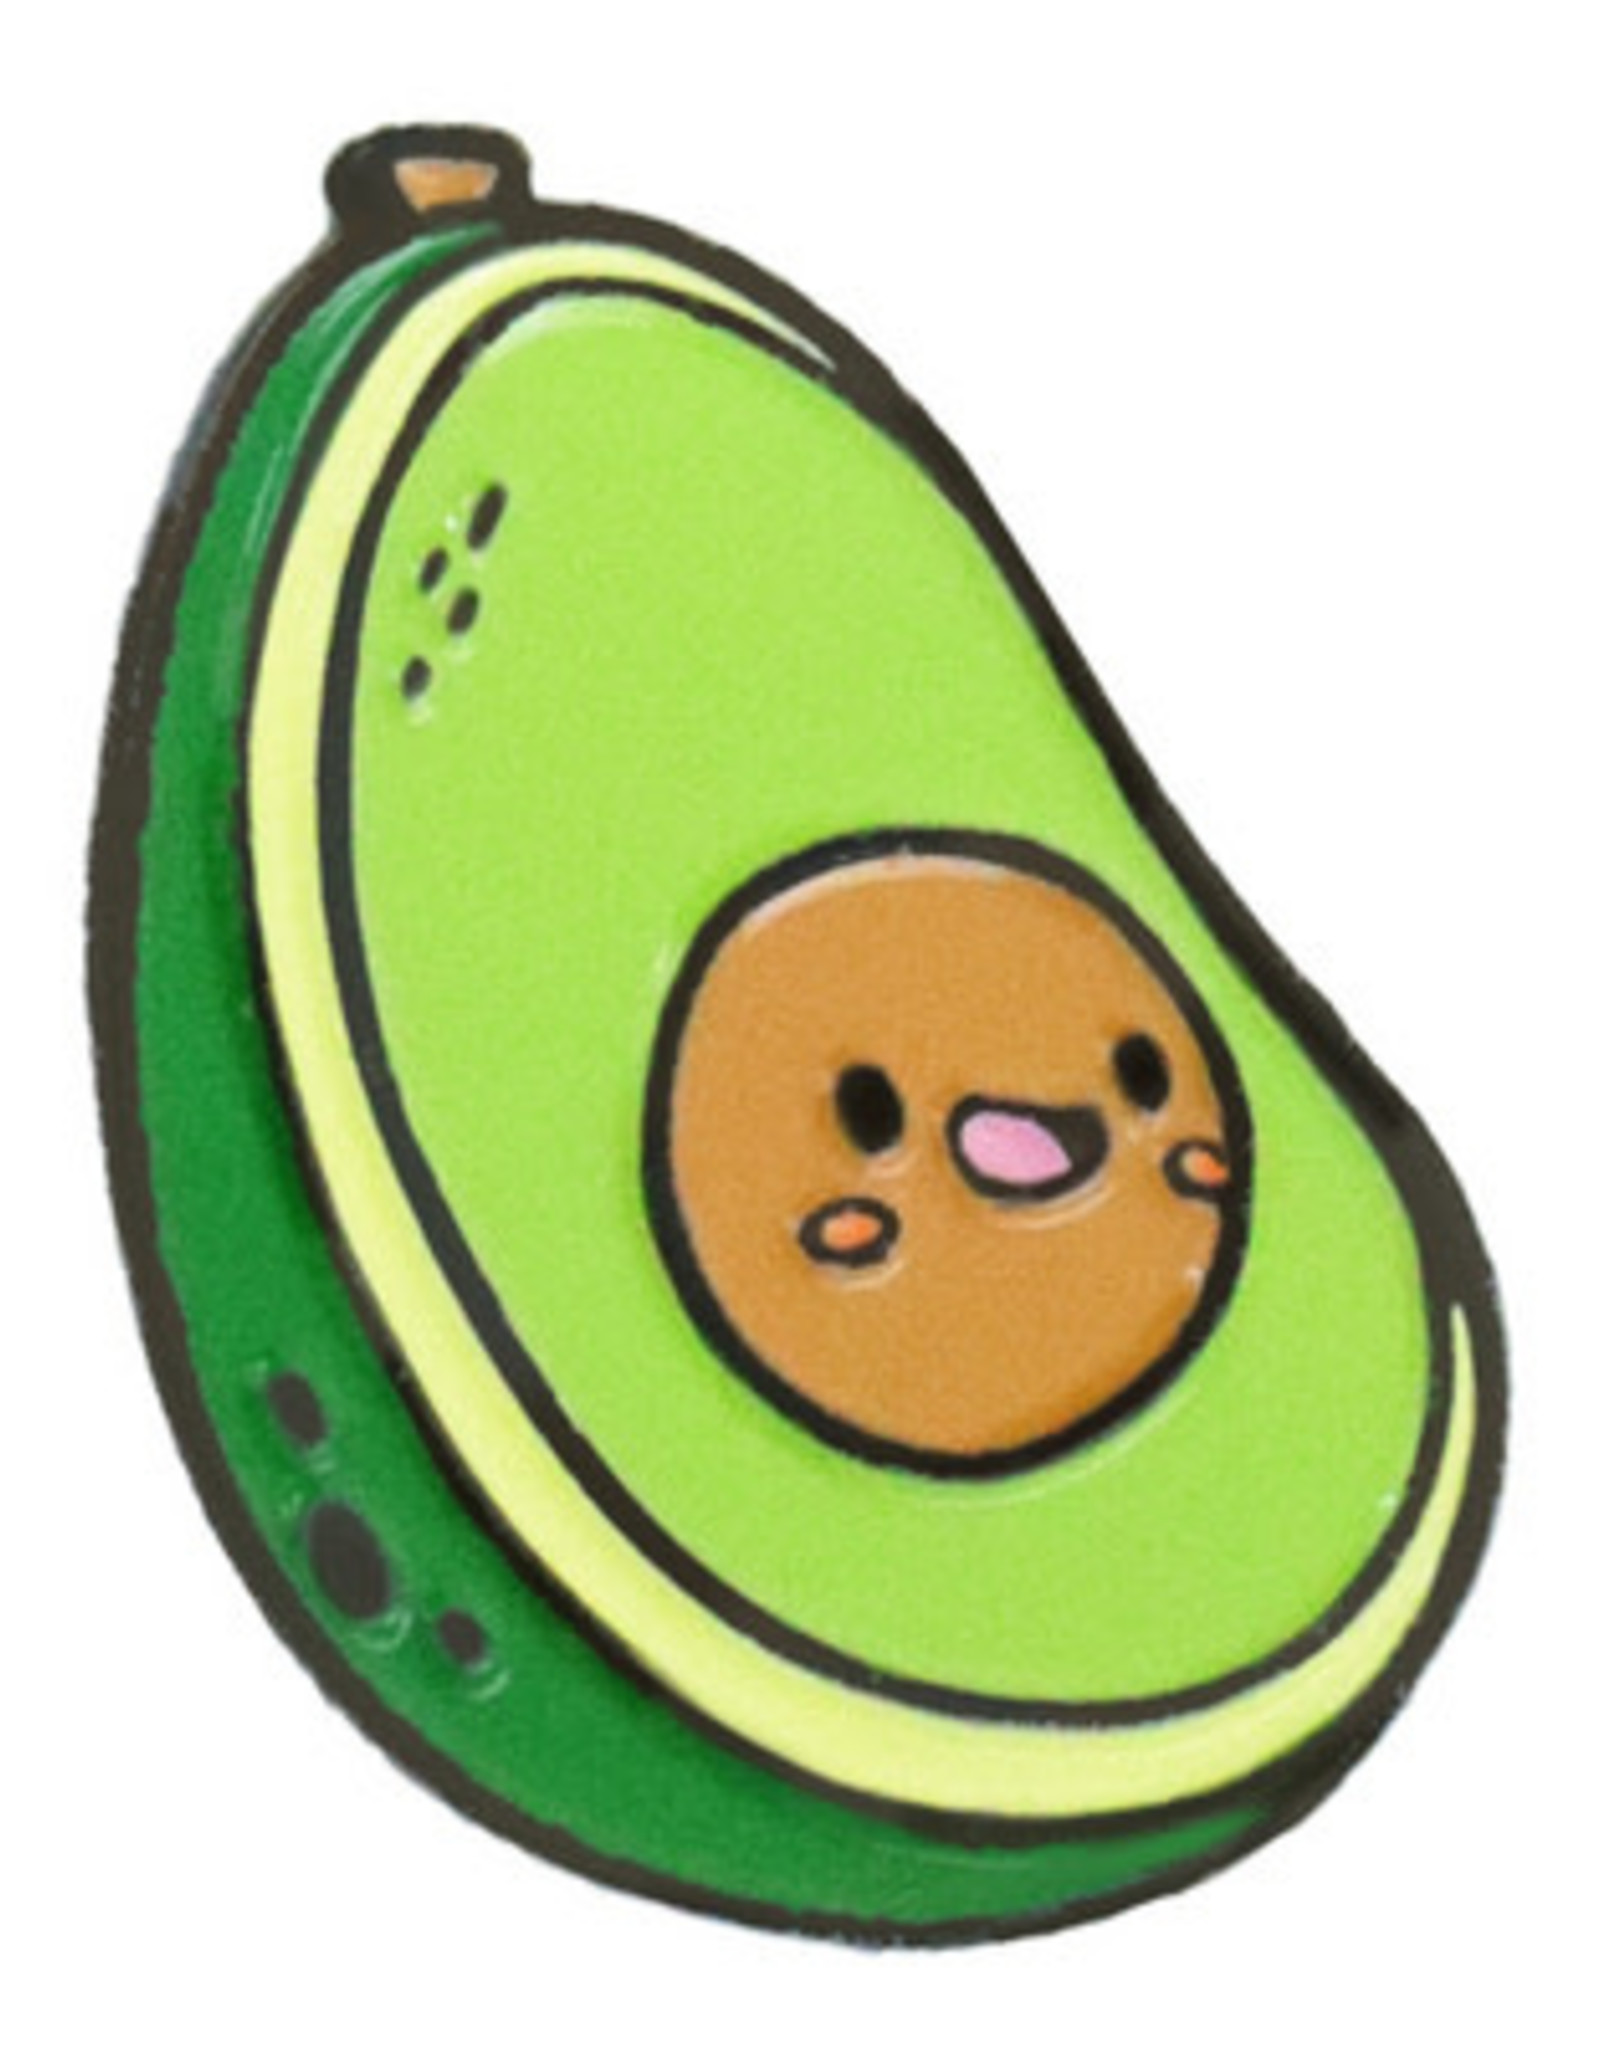 Squishable Enamel Pin - Avocado